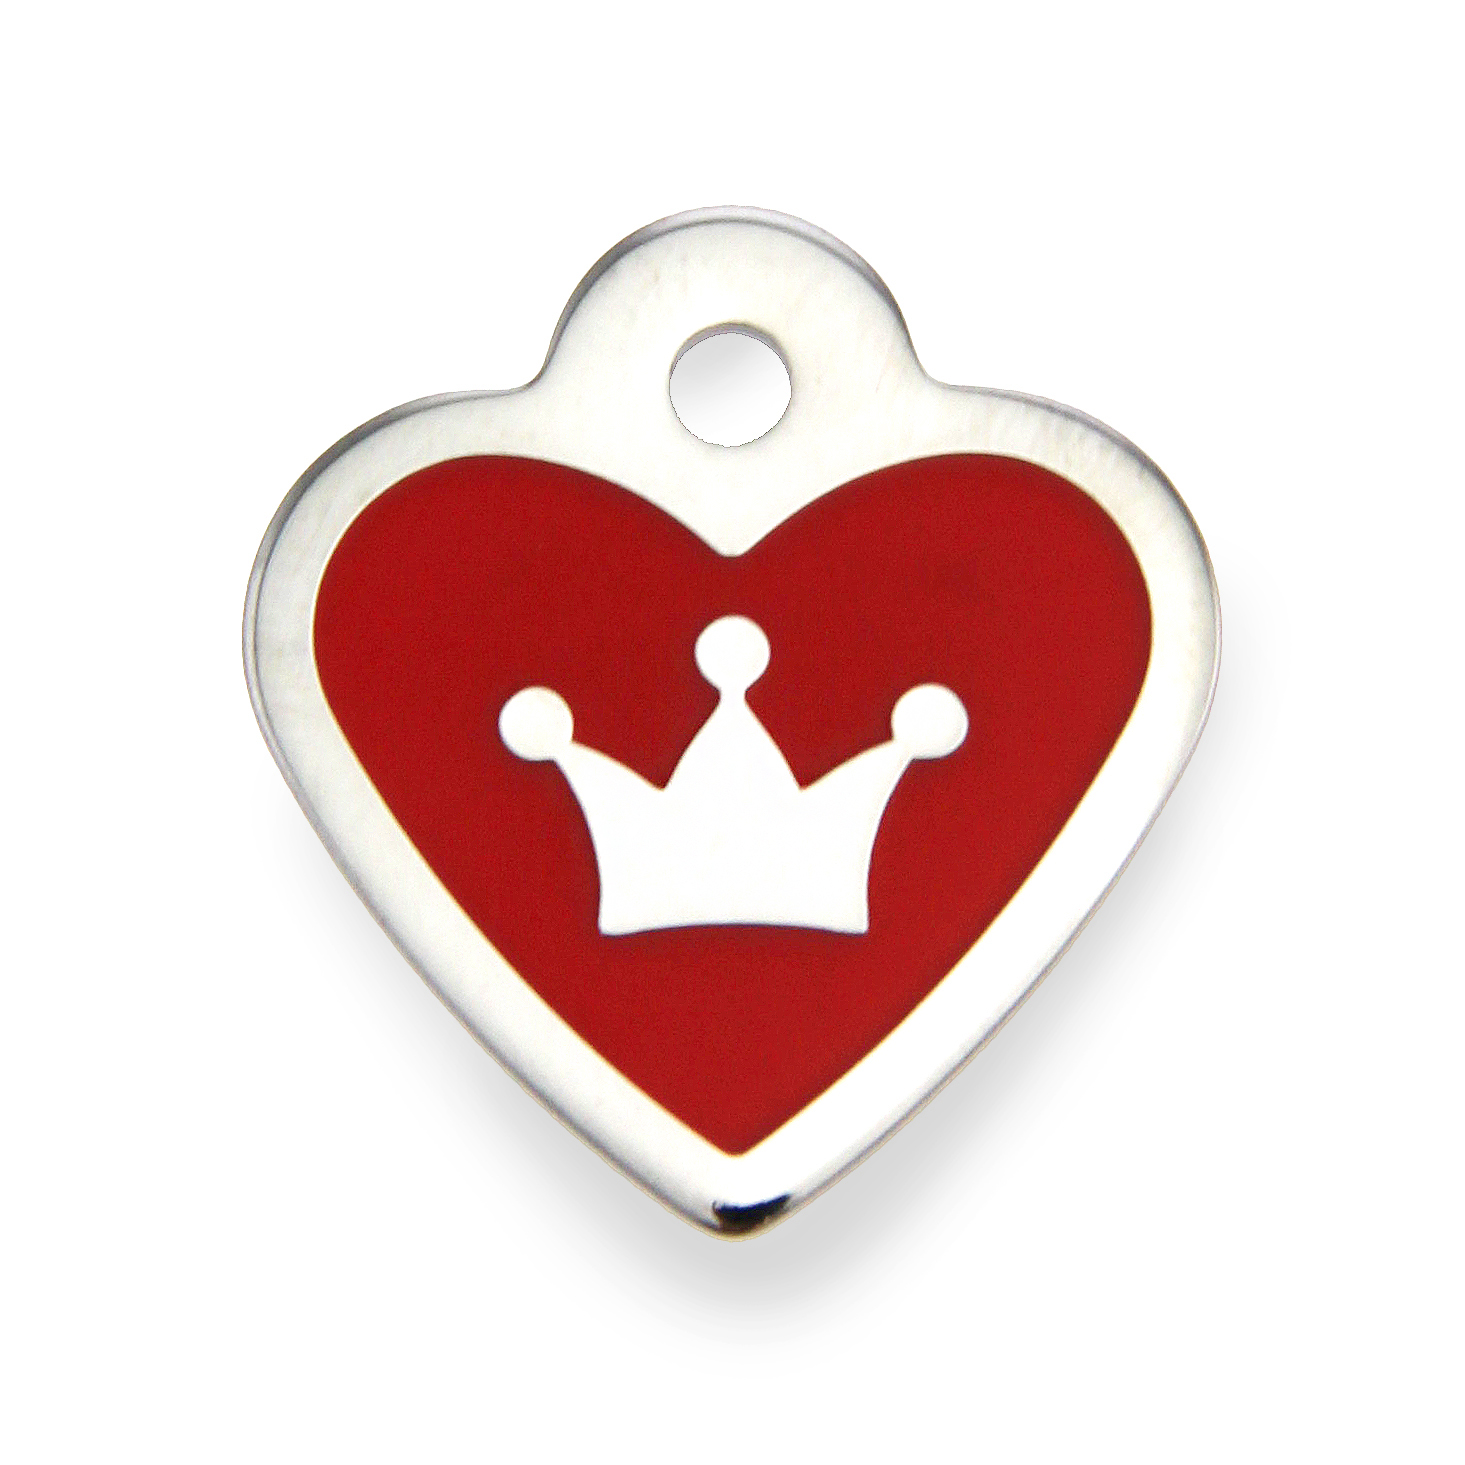 Crown Heart Small Engravable Pet I.D. Tag - Chrome and Red